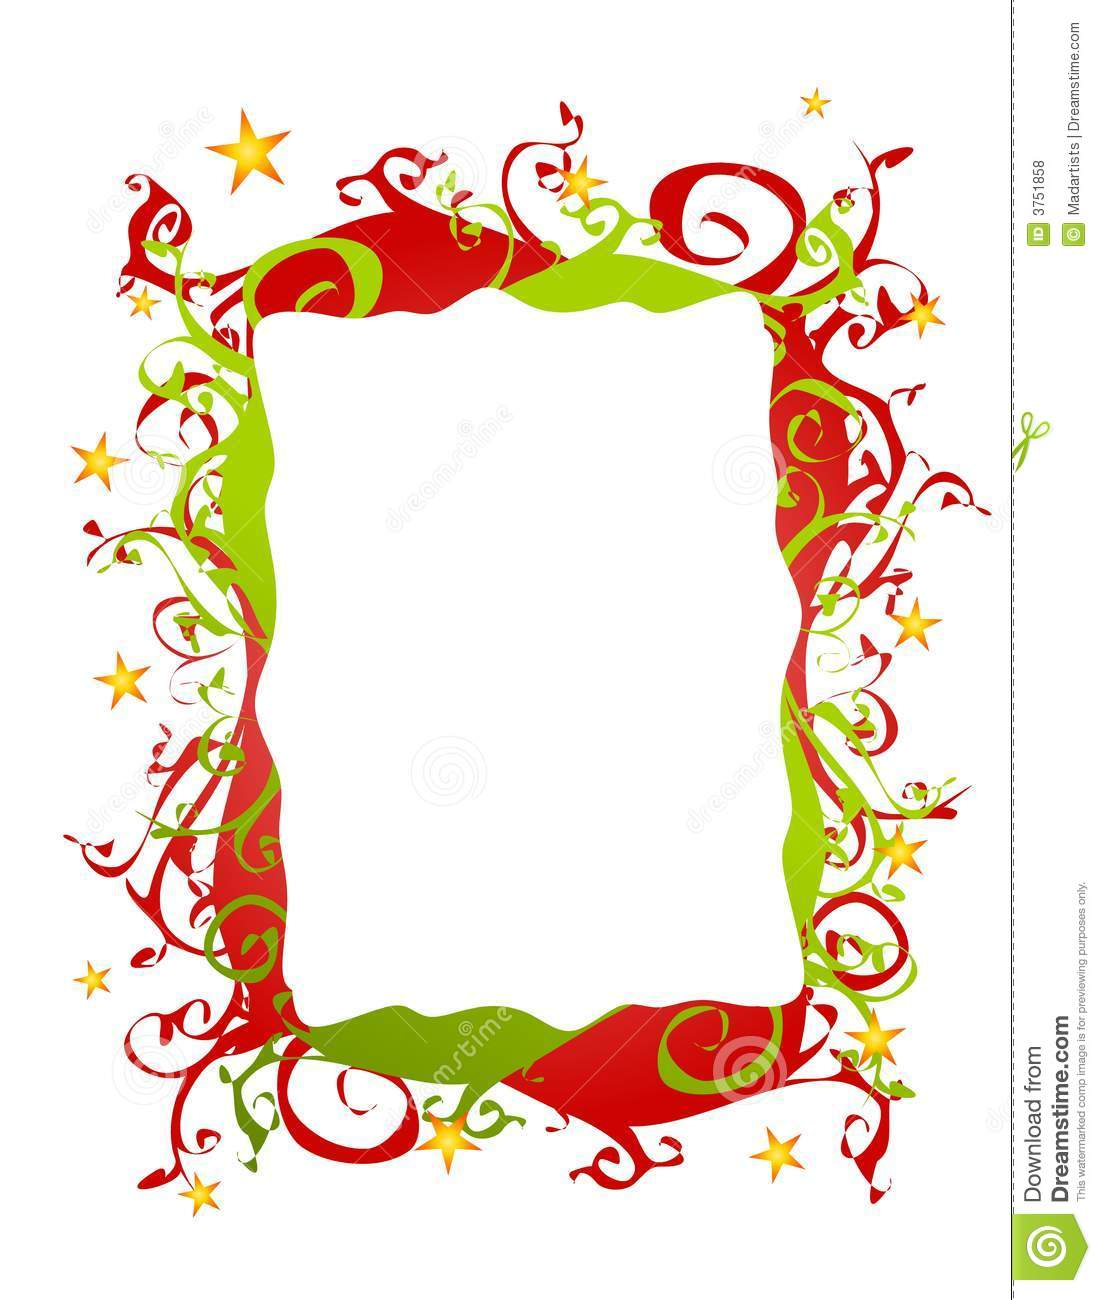 Clipart christmas border microsoft picture black and white stock Fire Border Clipart | Free download best Fire Border Clipart on ... picture black and white stock